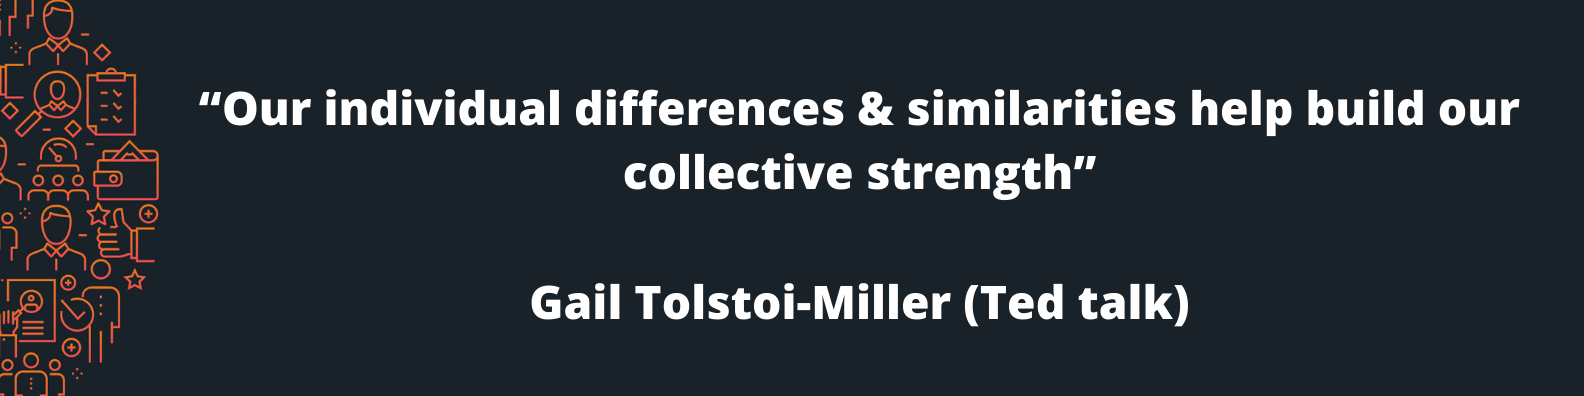 """""""Our individual differences & similarities help build our collective strength"""" Gail Tolstoi-Miller (Ted talk)"""